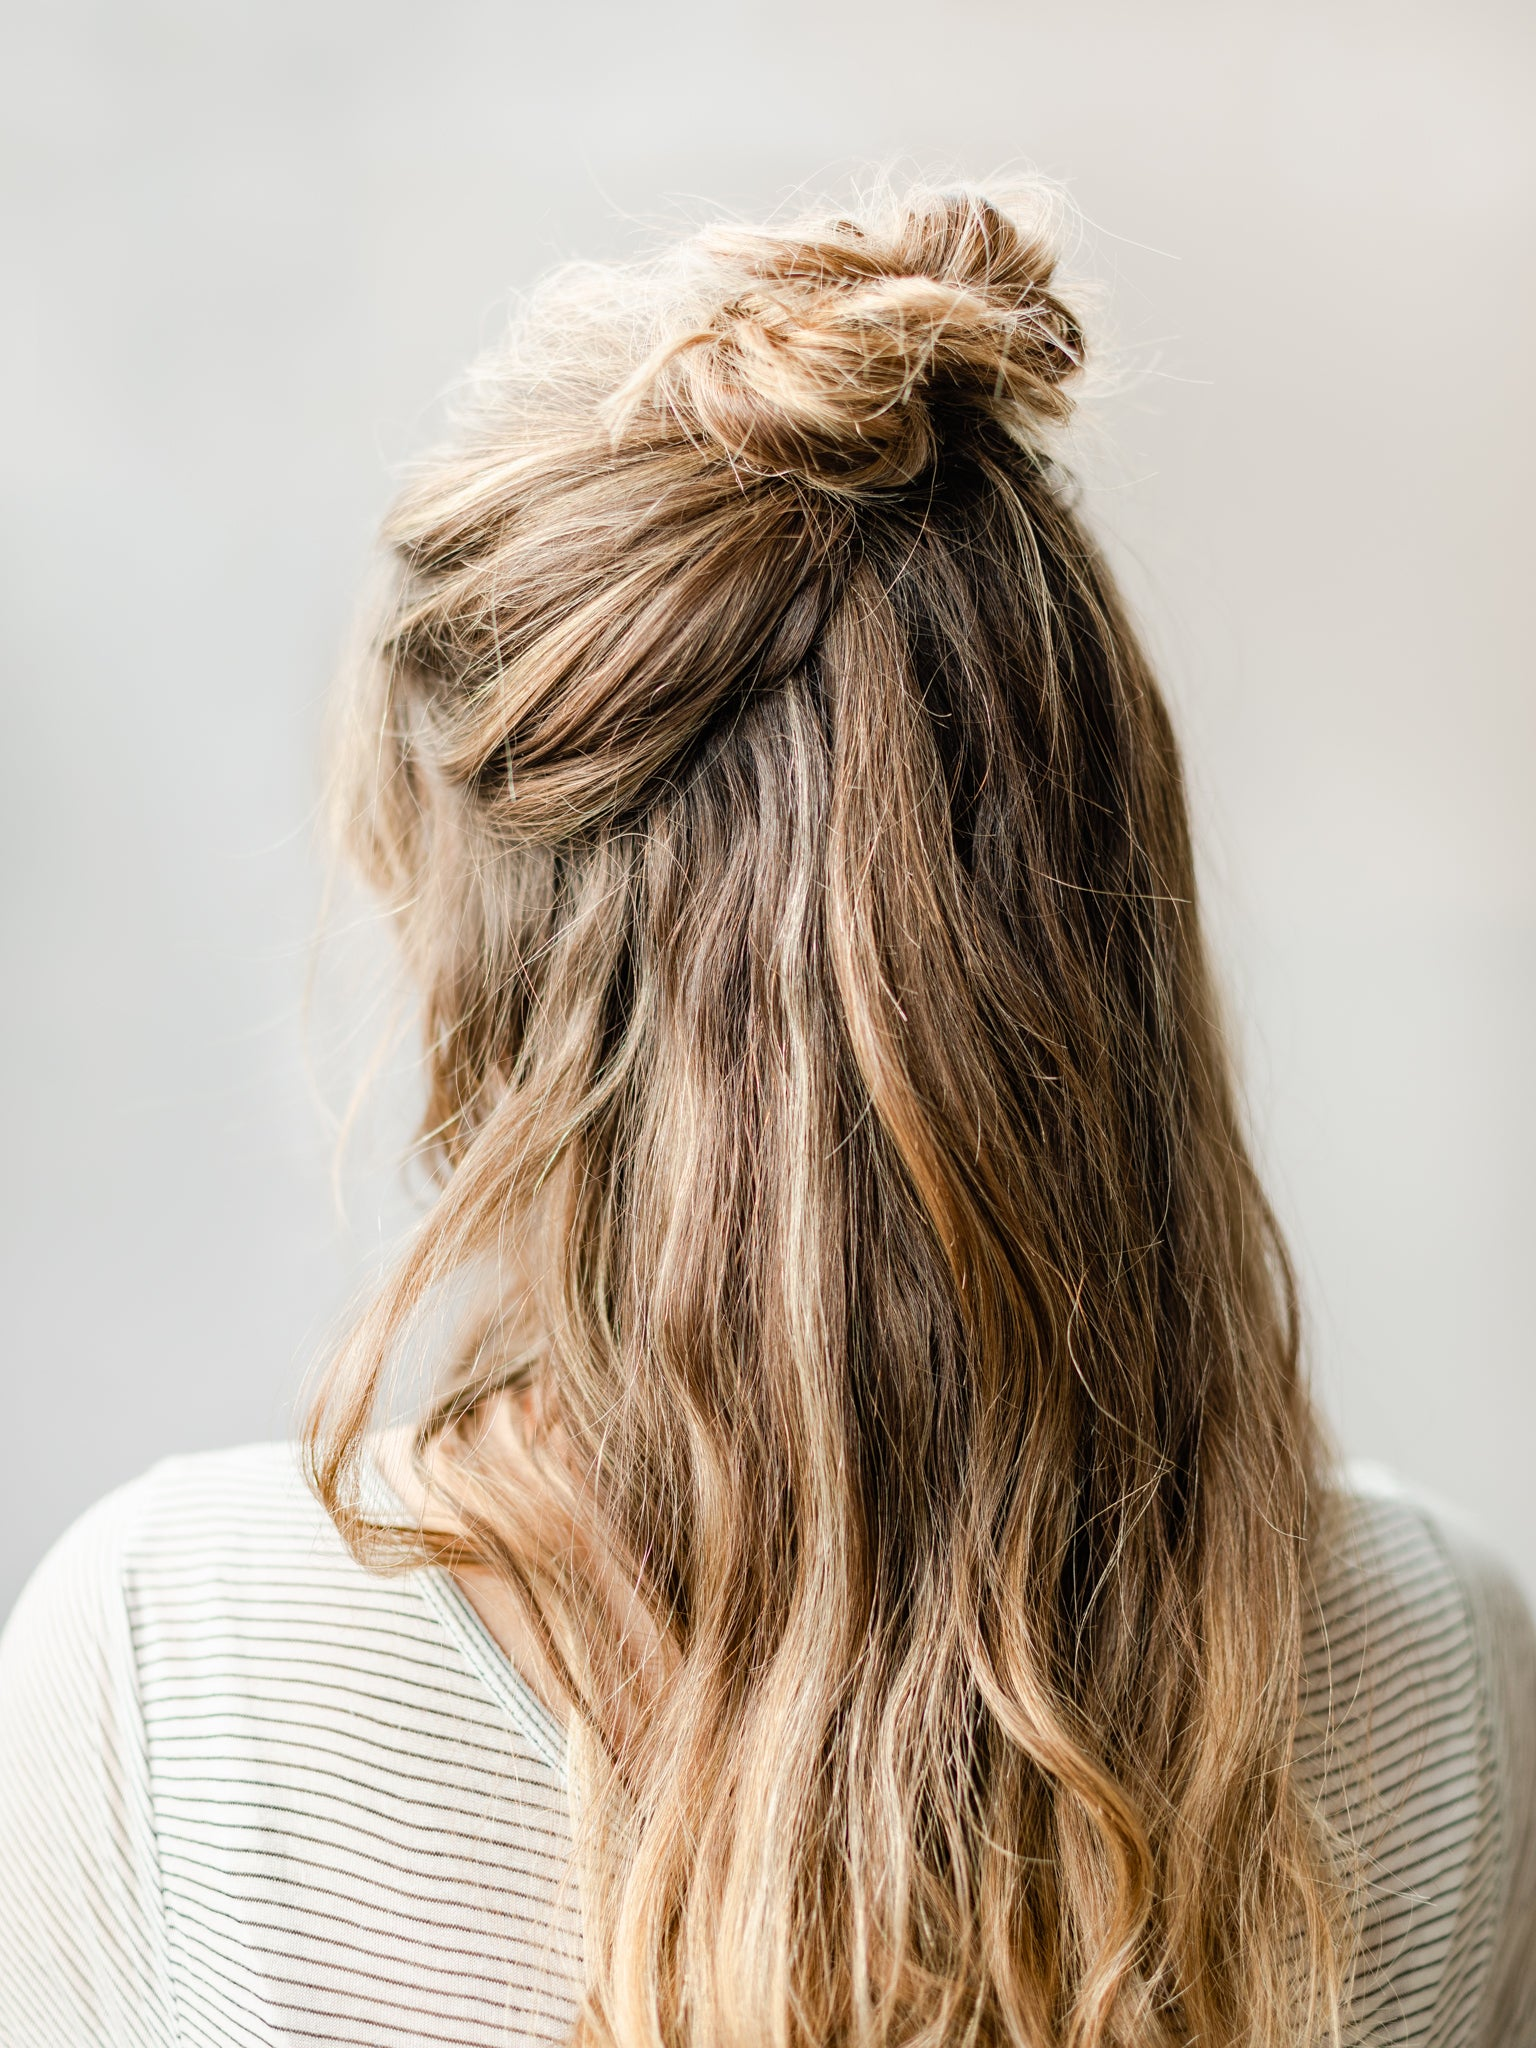 Hair half up in a top knot bun for a sleek easy holiday hairstyle look.